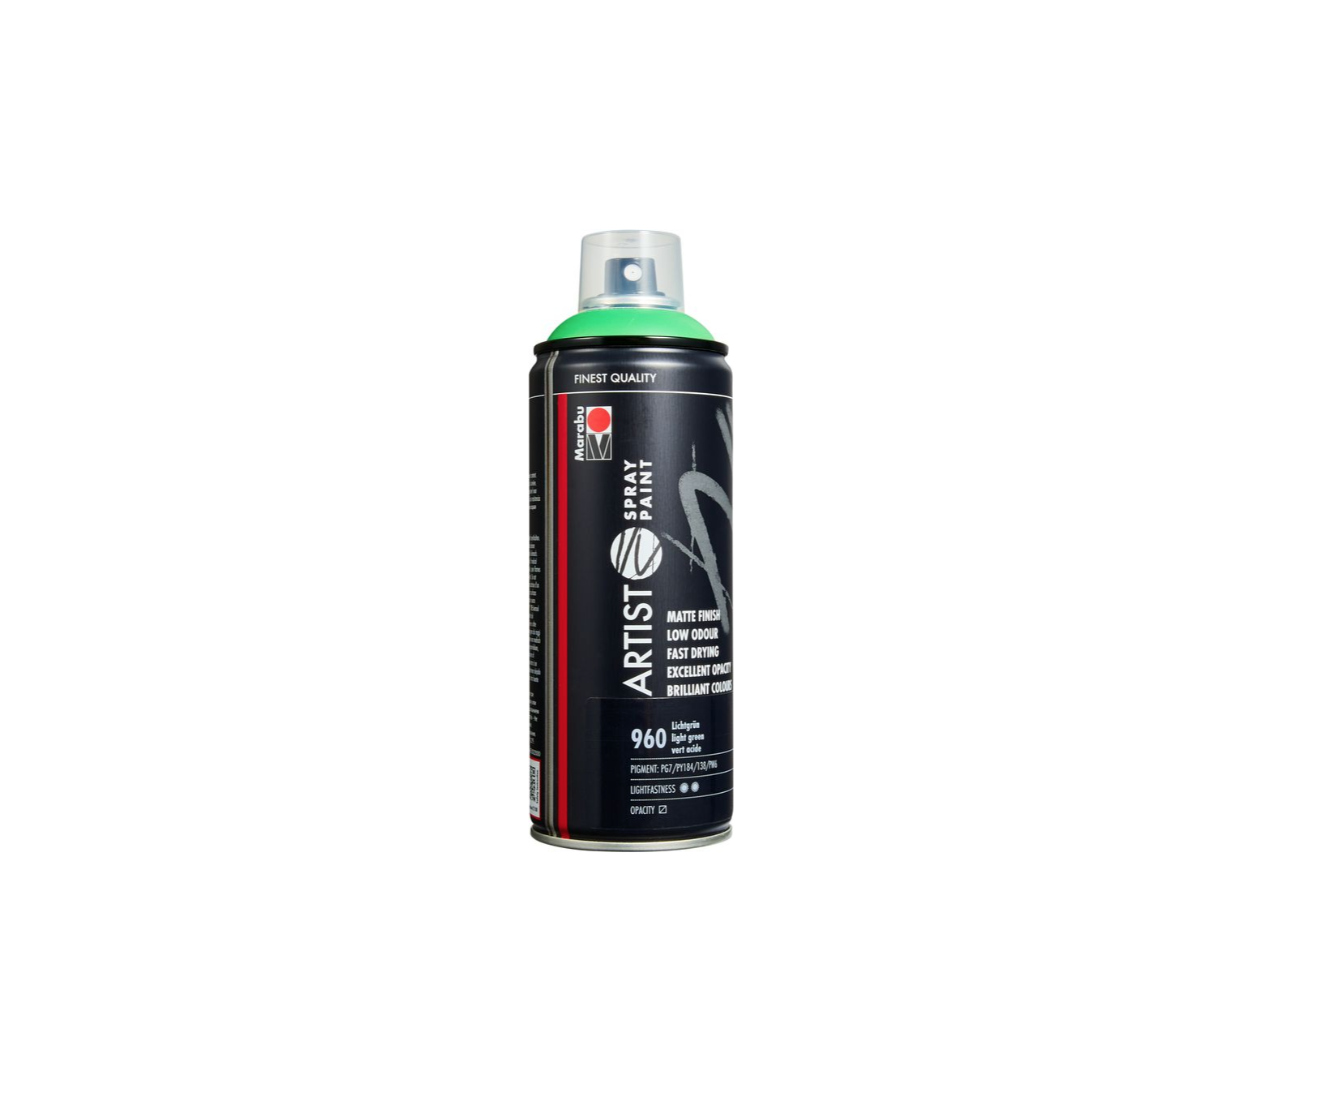 MARABU ARTIST SPRAY PAINT 960 VERT ACIDE INDOOR OUTDOOR 4007751690272 DIY ART BRICOLAGE COMASOUND KARTEL CSK ONLINE